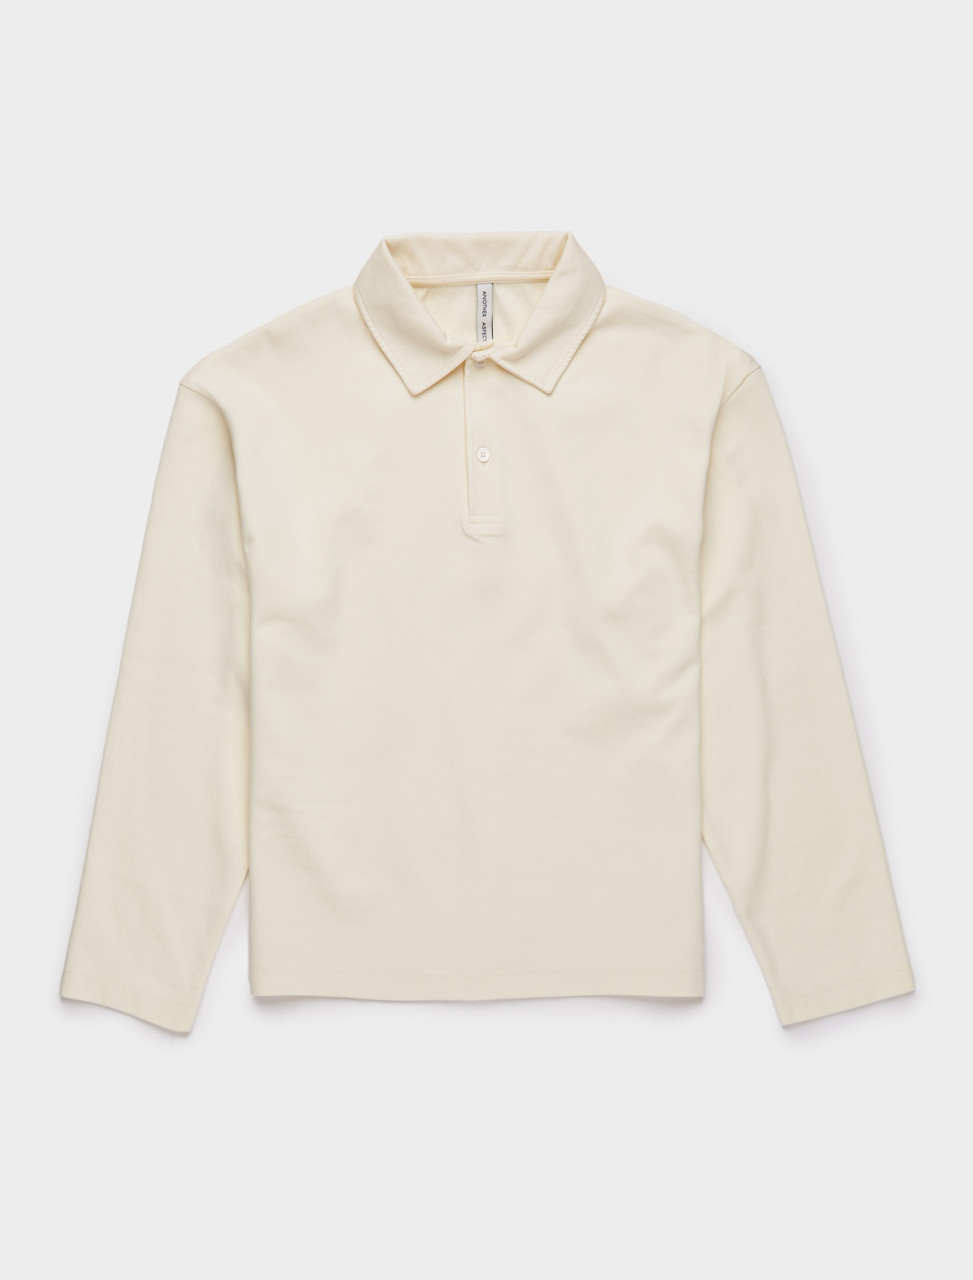 344-123463-008 ANOTHER ASPECT ANOTHER SWEATSHIRT POLO 1.0 SWEET CORN